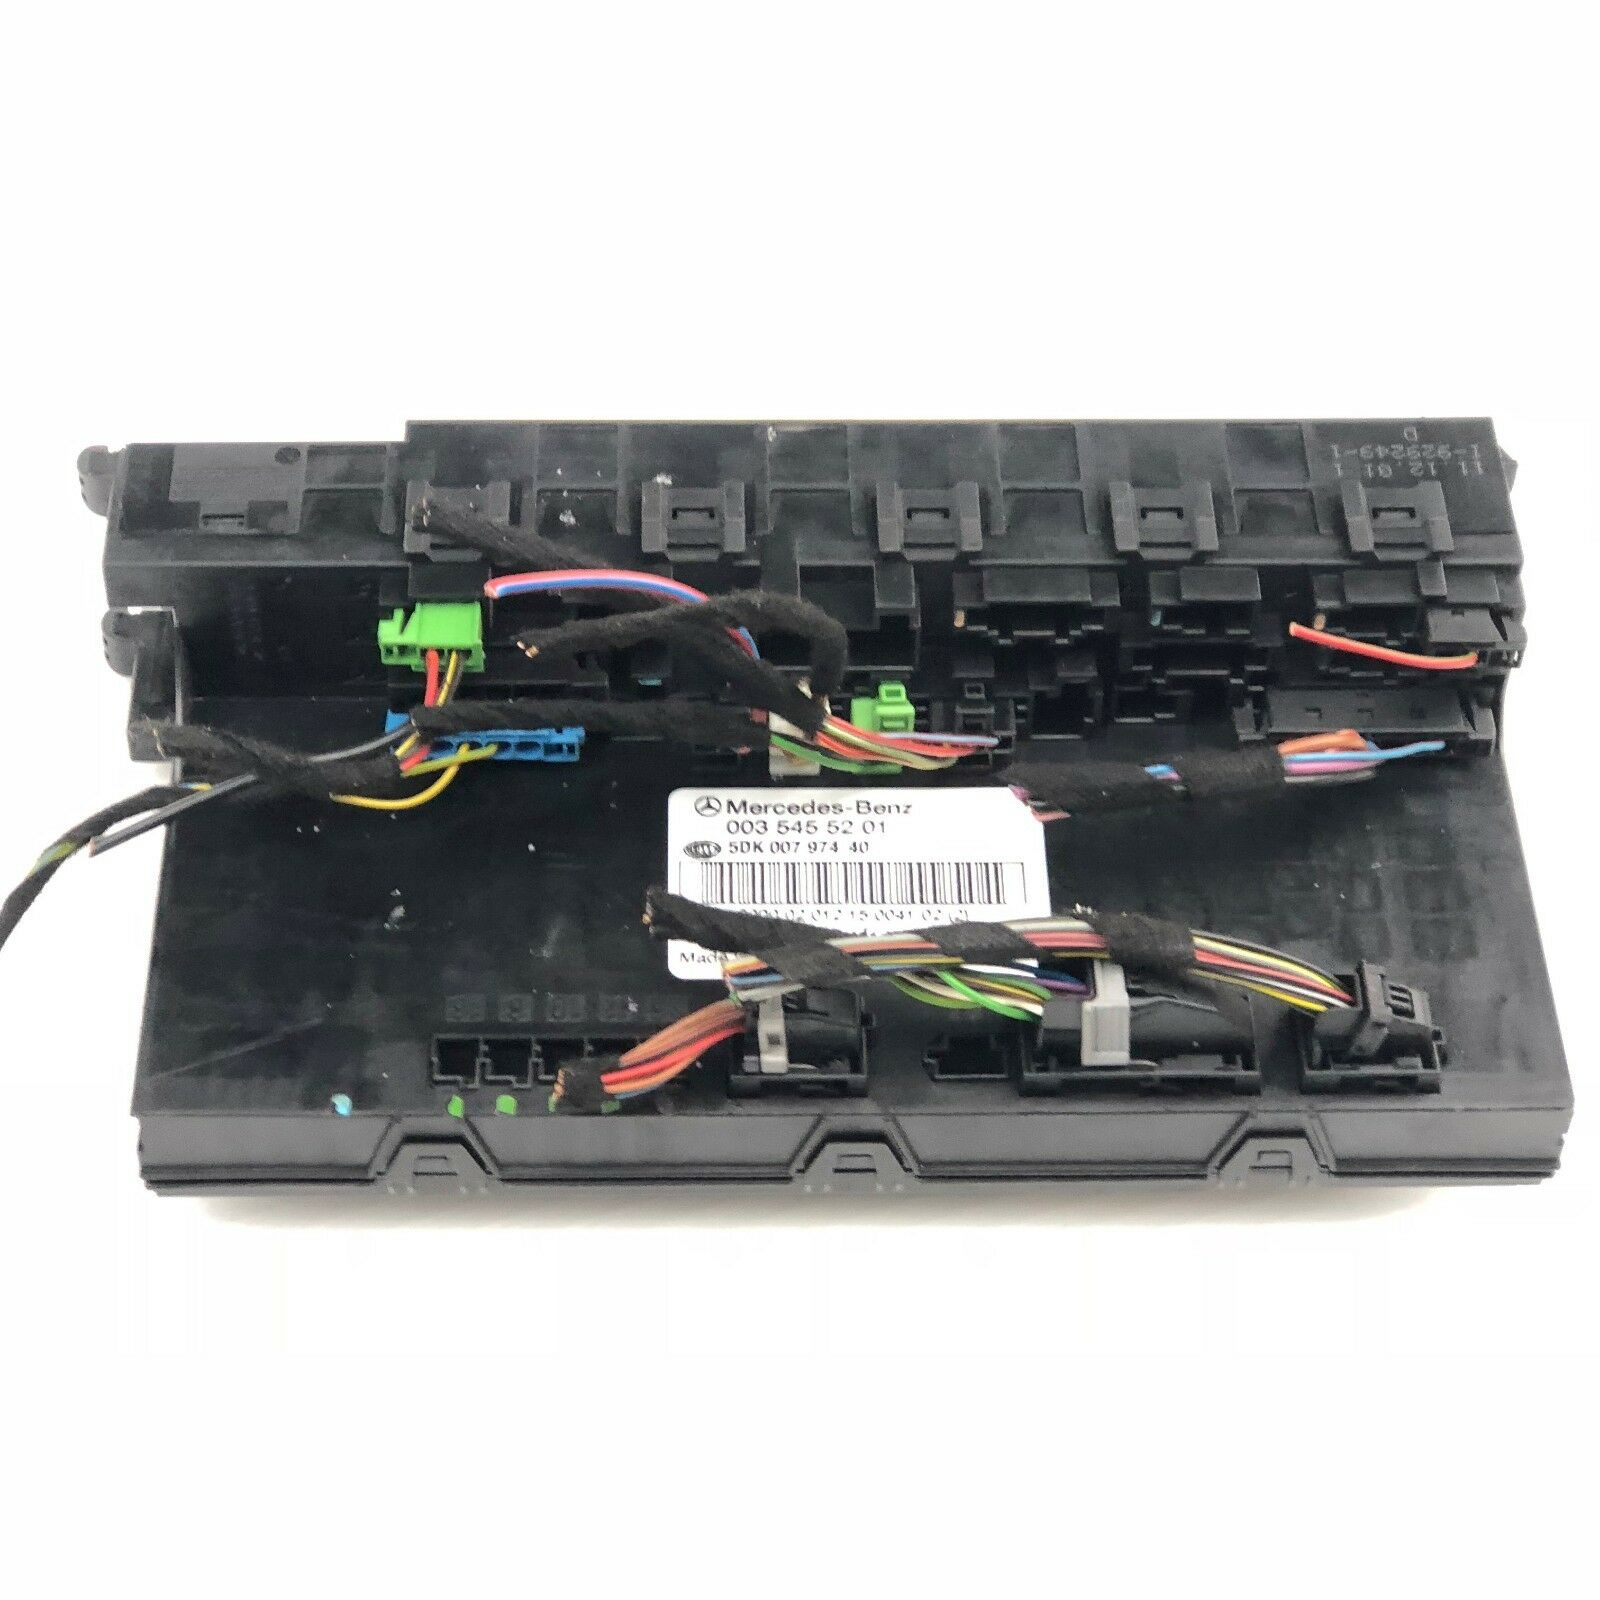 2002 - 2006 Mercedes-Benz C230 SAM Fuse Box Control Module P: 003 545 1 of  1Only 1 available ...